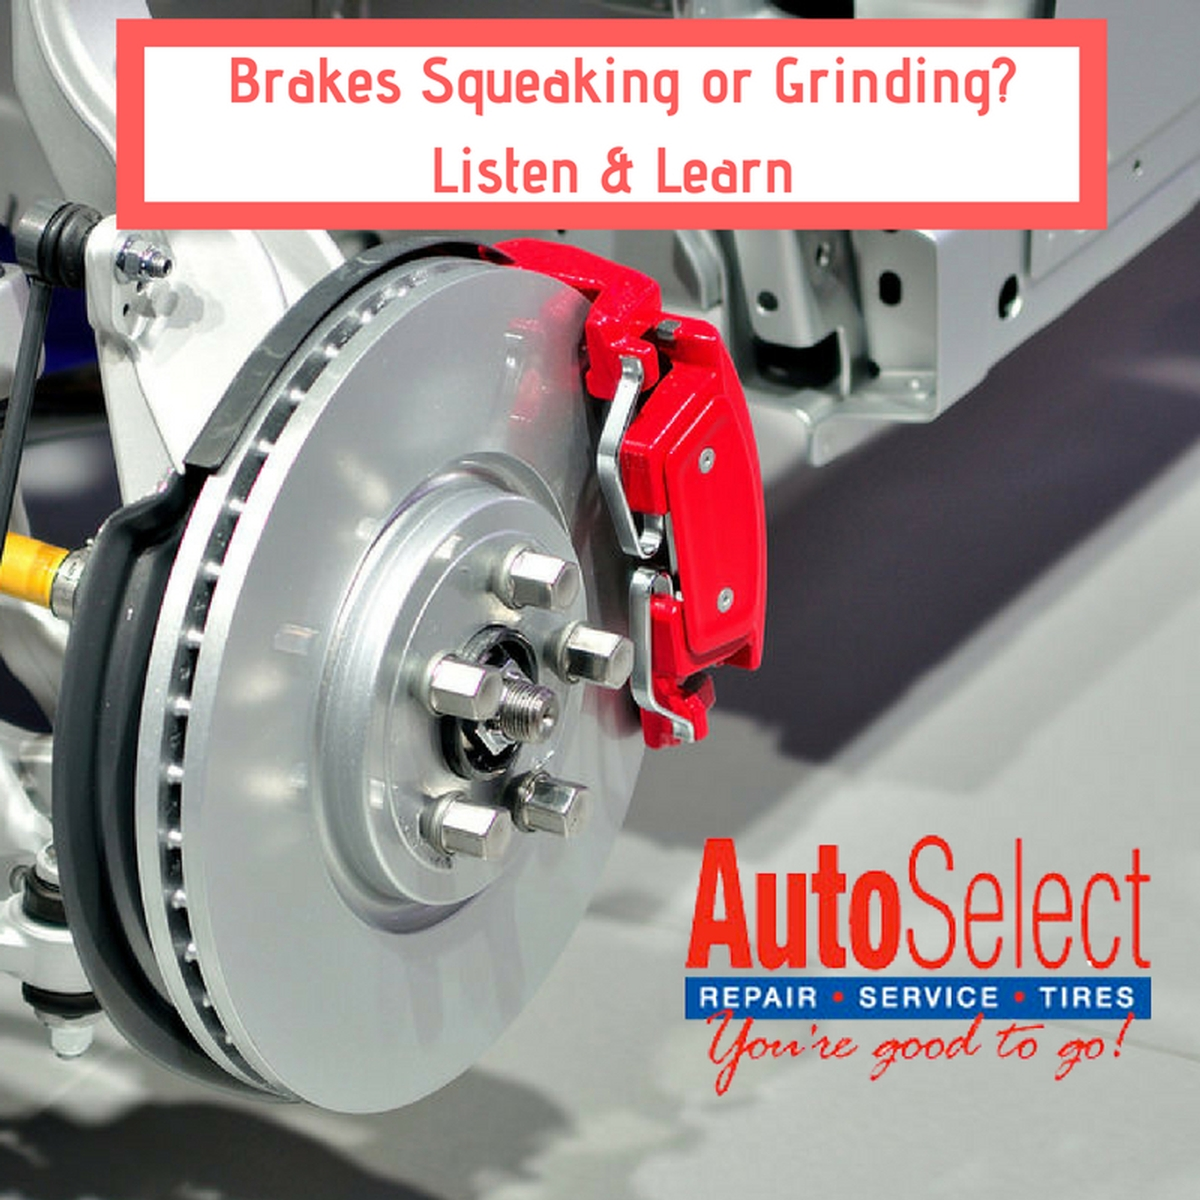 Do Your Brakes Squeak or Grind? Listen and Learn Why and What to Do!